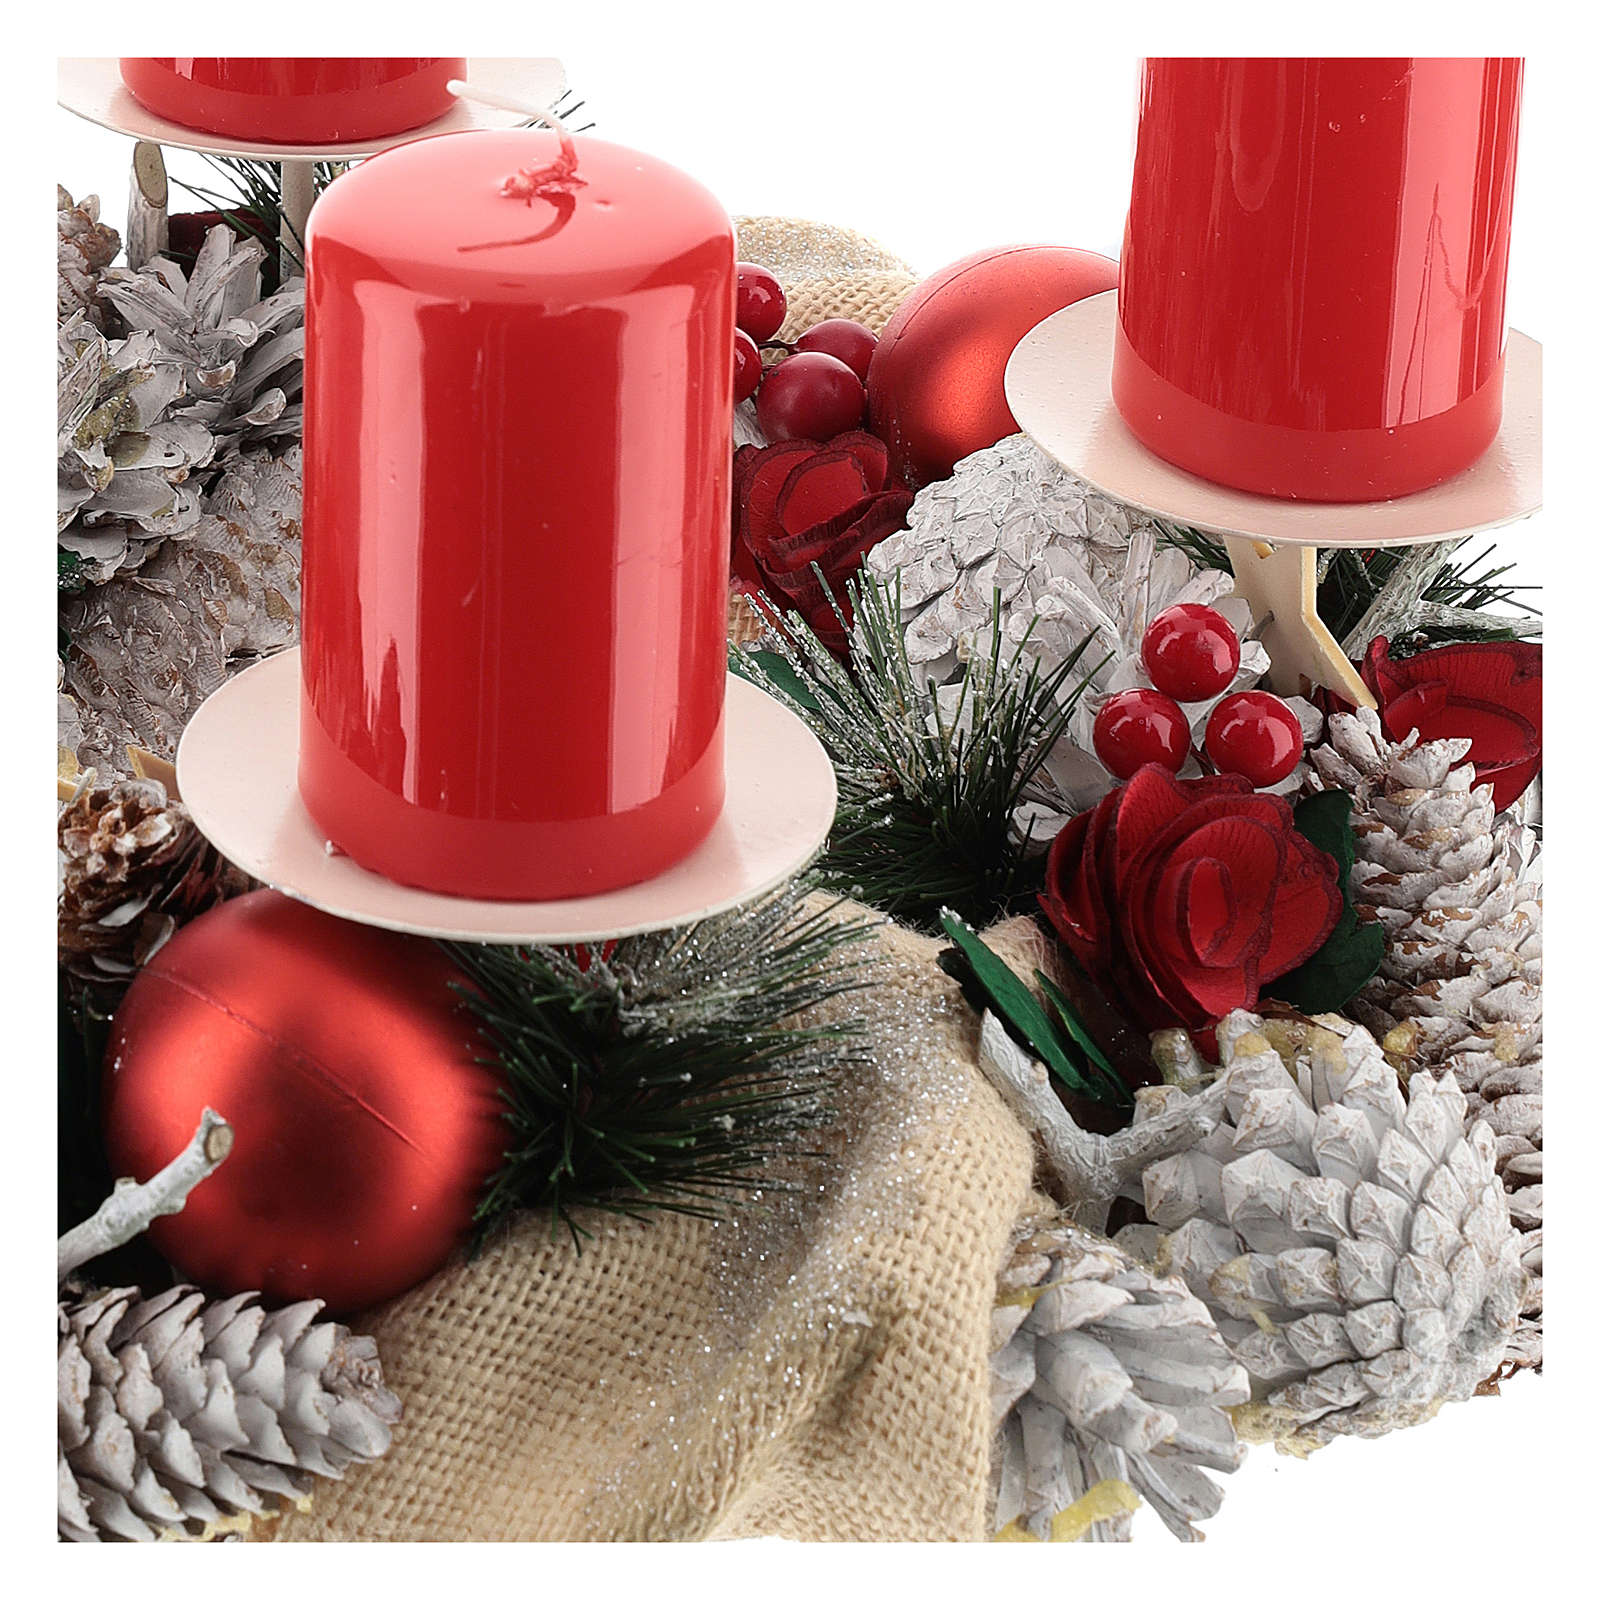 Advent wreath complete kit with fake snow, red berries, white candle holders and red candles 3